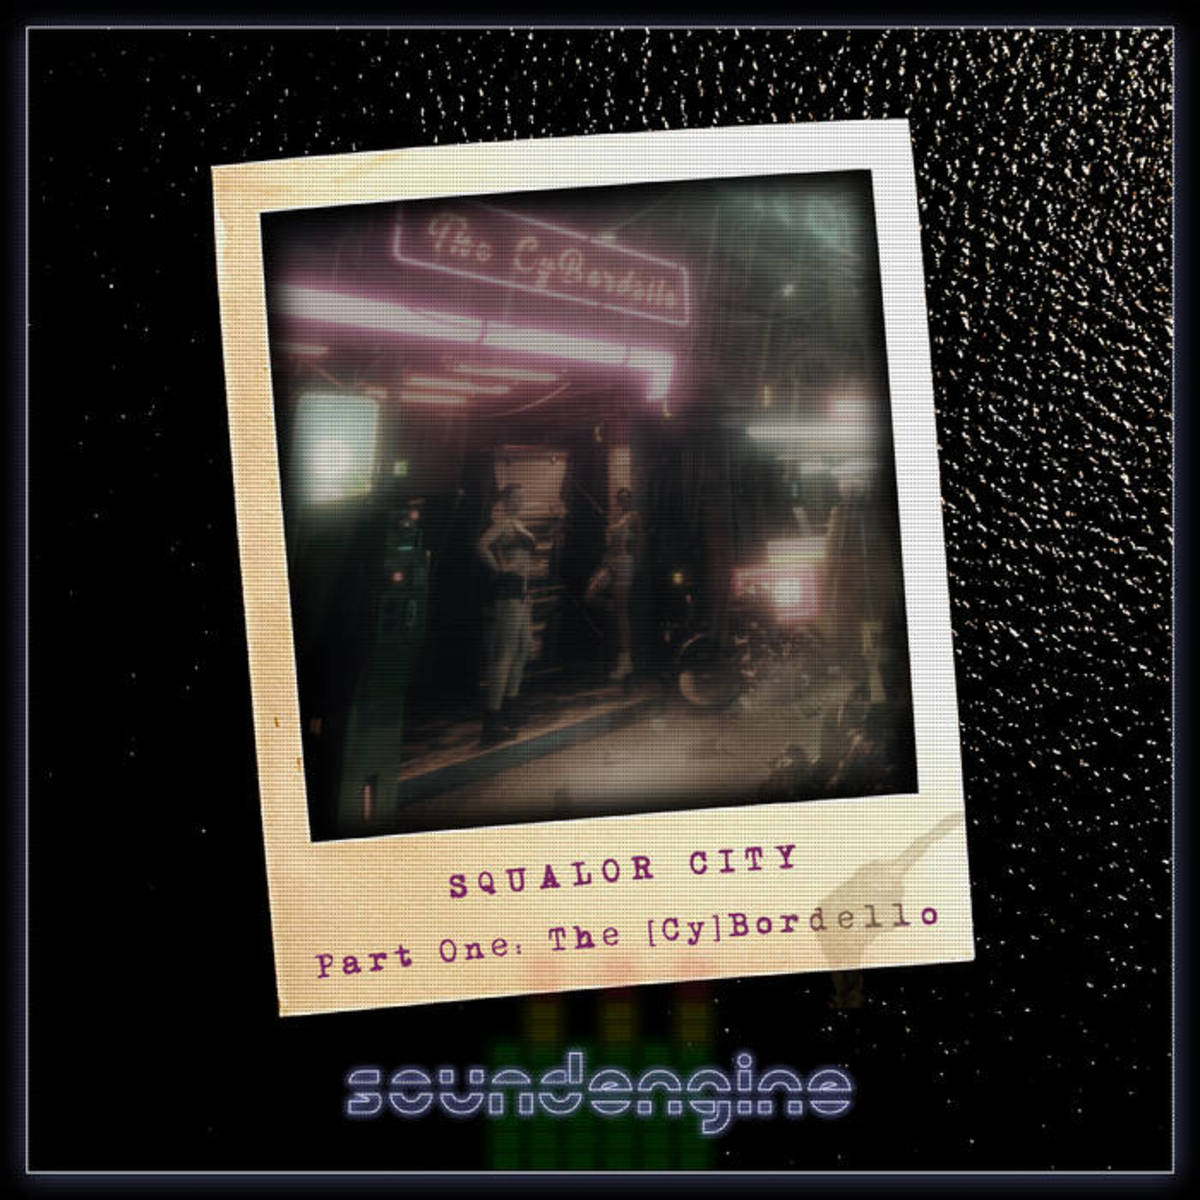 """Synthwave Album Review: """"Squalor City Pt. 1: The [Cy]Bordello"""" by Soundengine"""